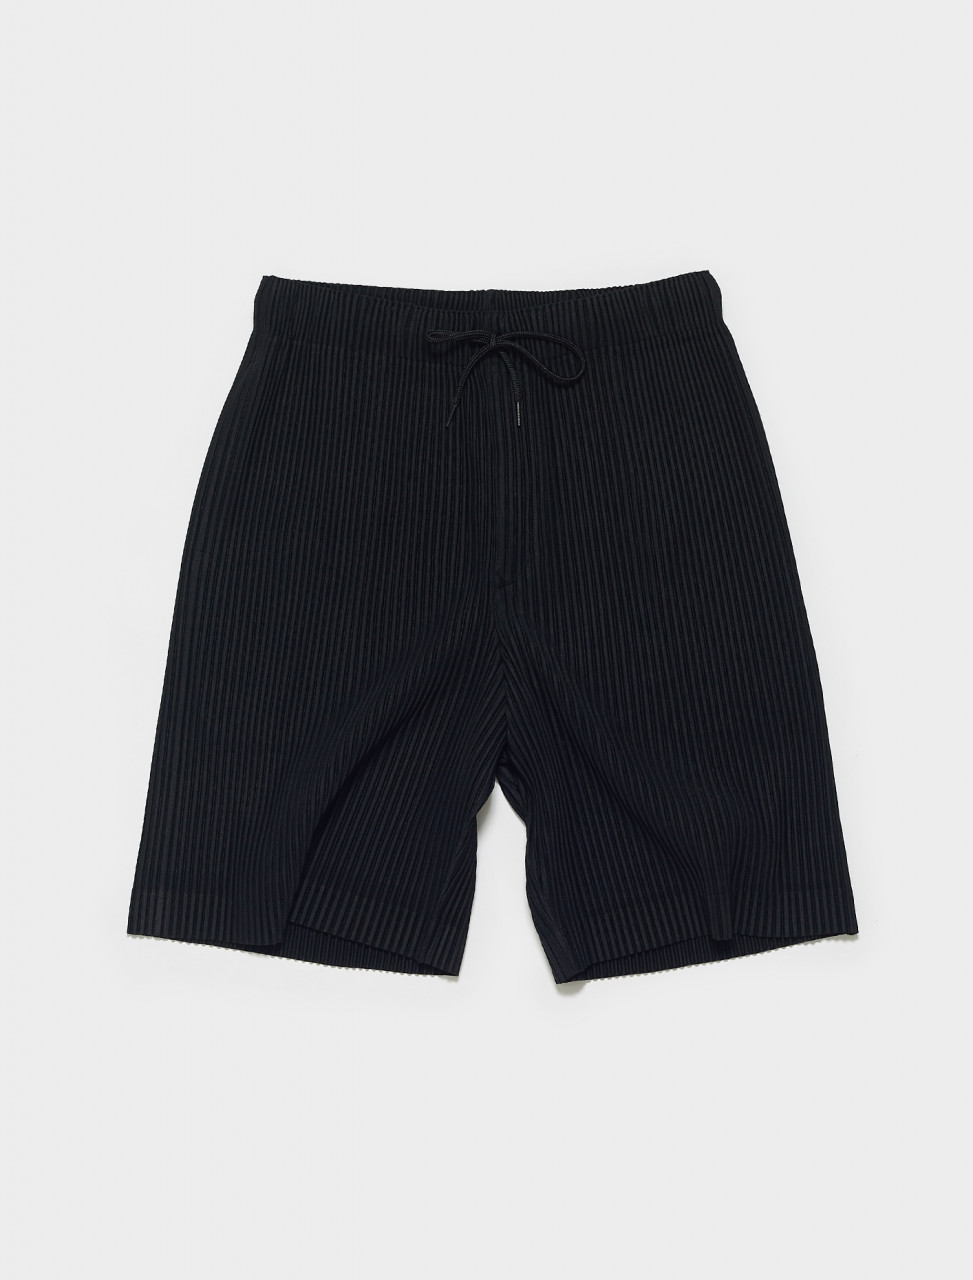 HP16JF133-15 HOMME PLISSE ISSEY MIYAKE PLEATED SHORTS IN BLACK